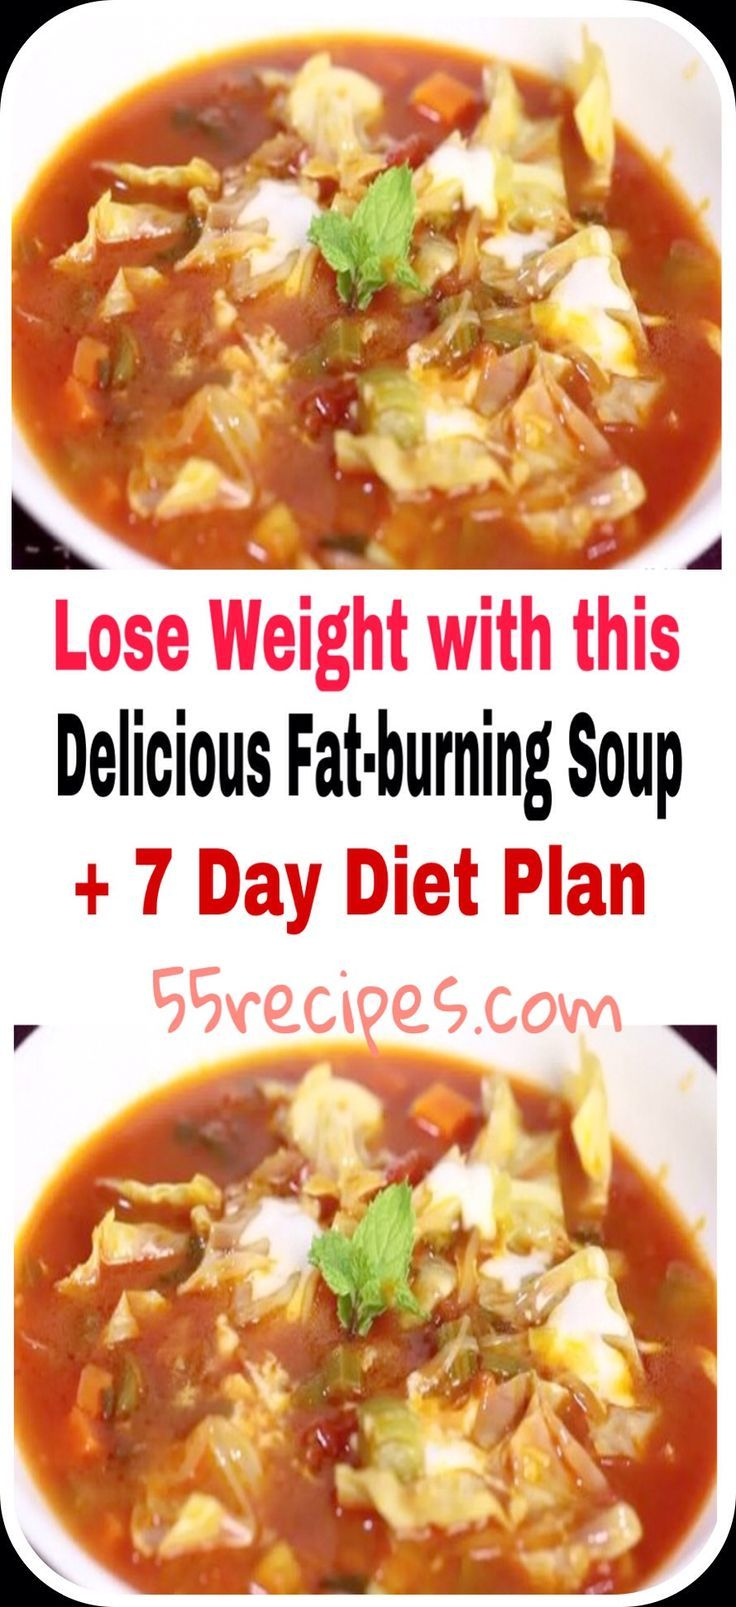 If you have not heard about the 7 day diet fatburning